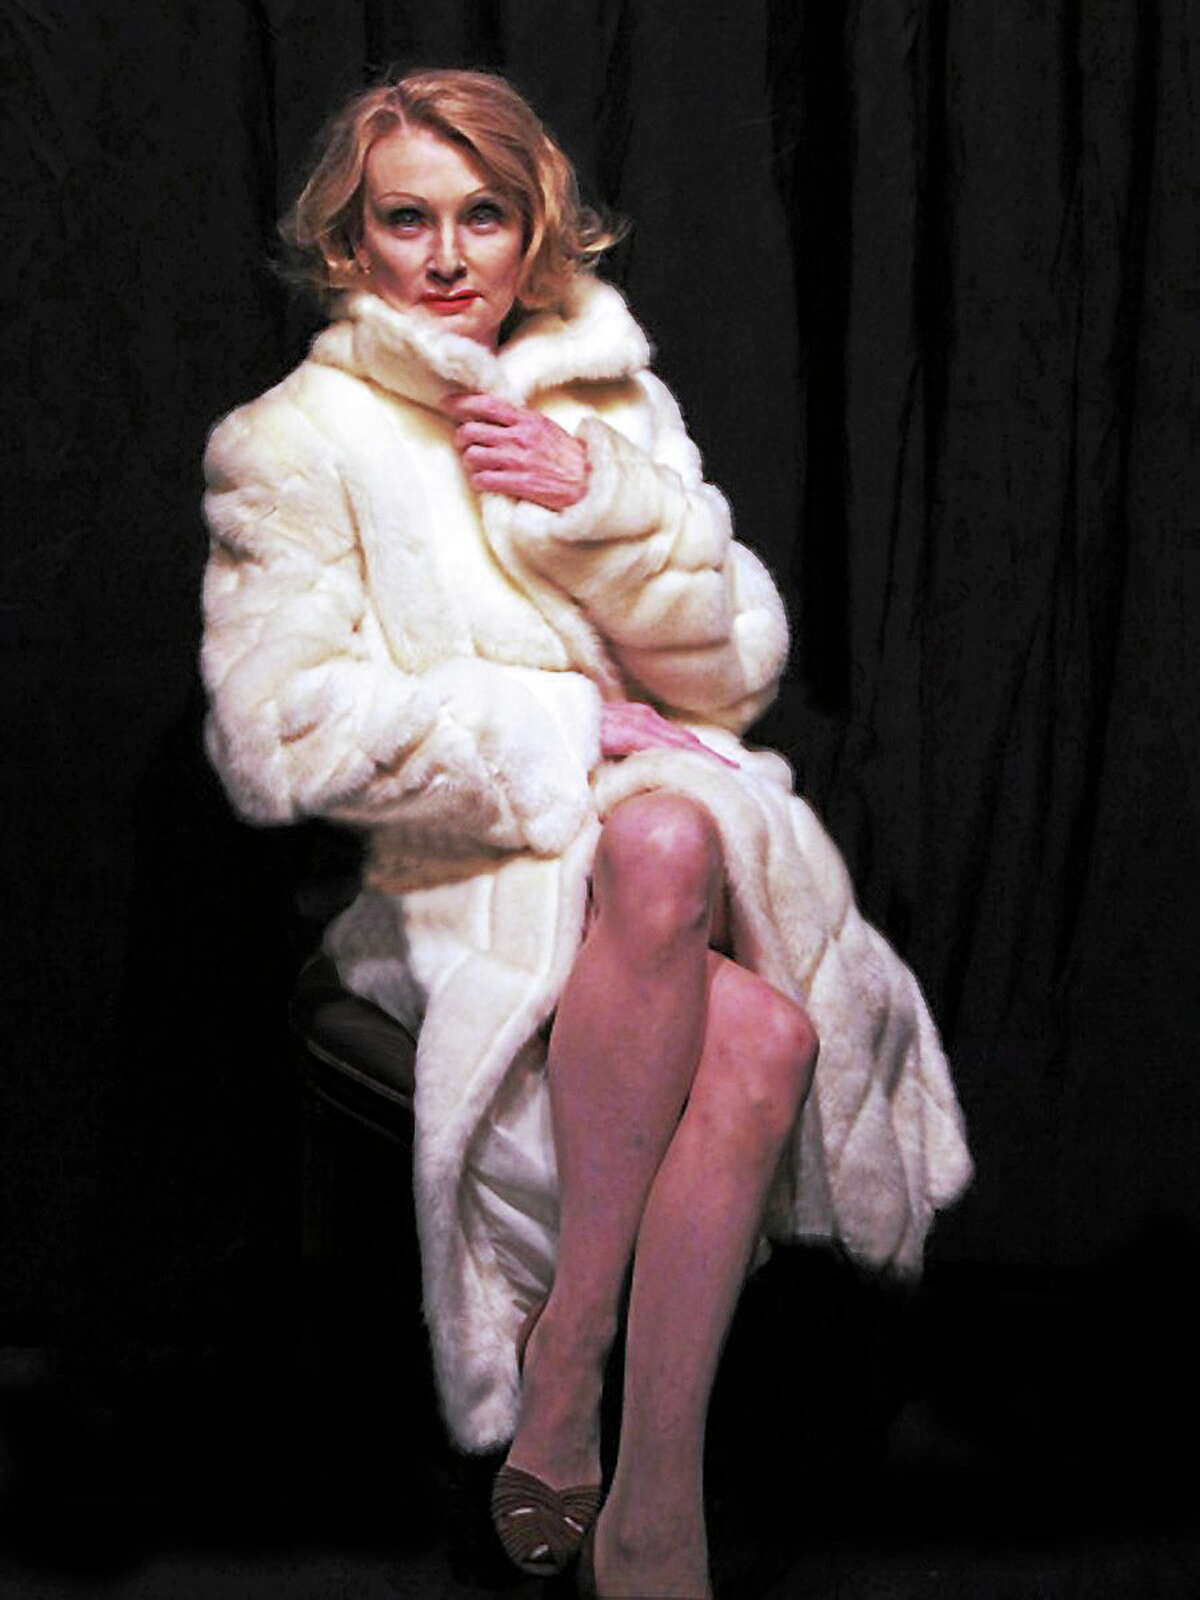 Submitted photo - Sherman Playhouse On Friday, May 30, The Sherman Playhouse is pleased to announce its limited engagement run of Marlene, Pam Gemsí stunning theatrical depiction of screen legend and artiste Marlene Dietrich, played by Katherine Almquist of Sharon.